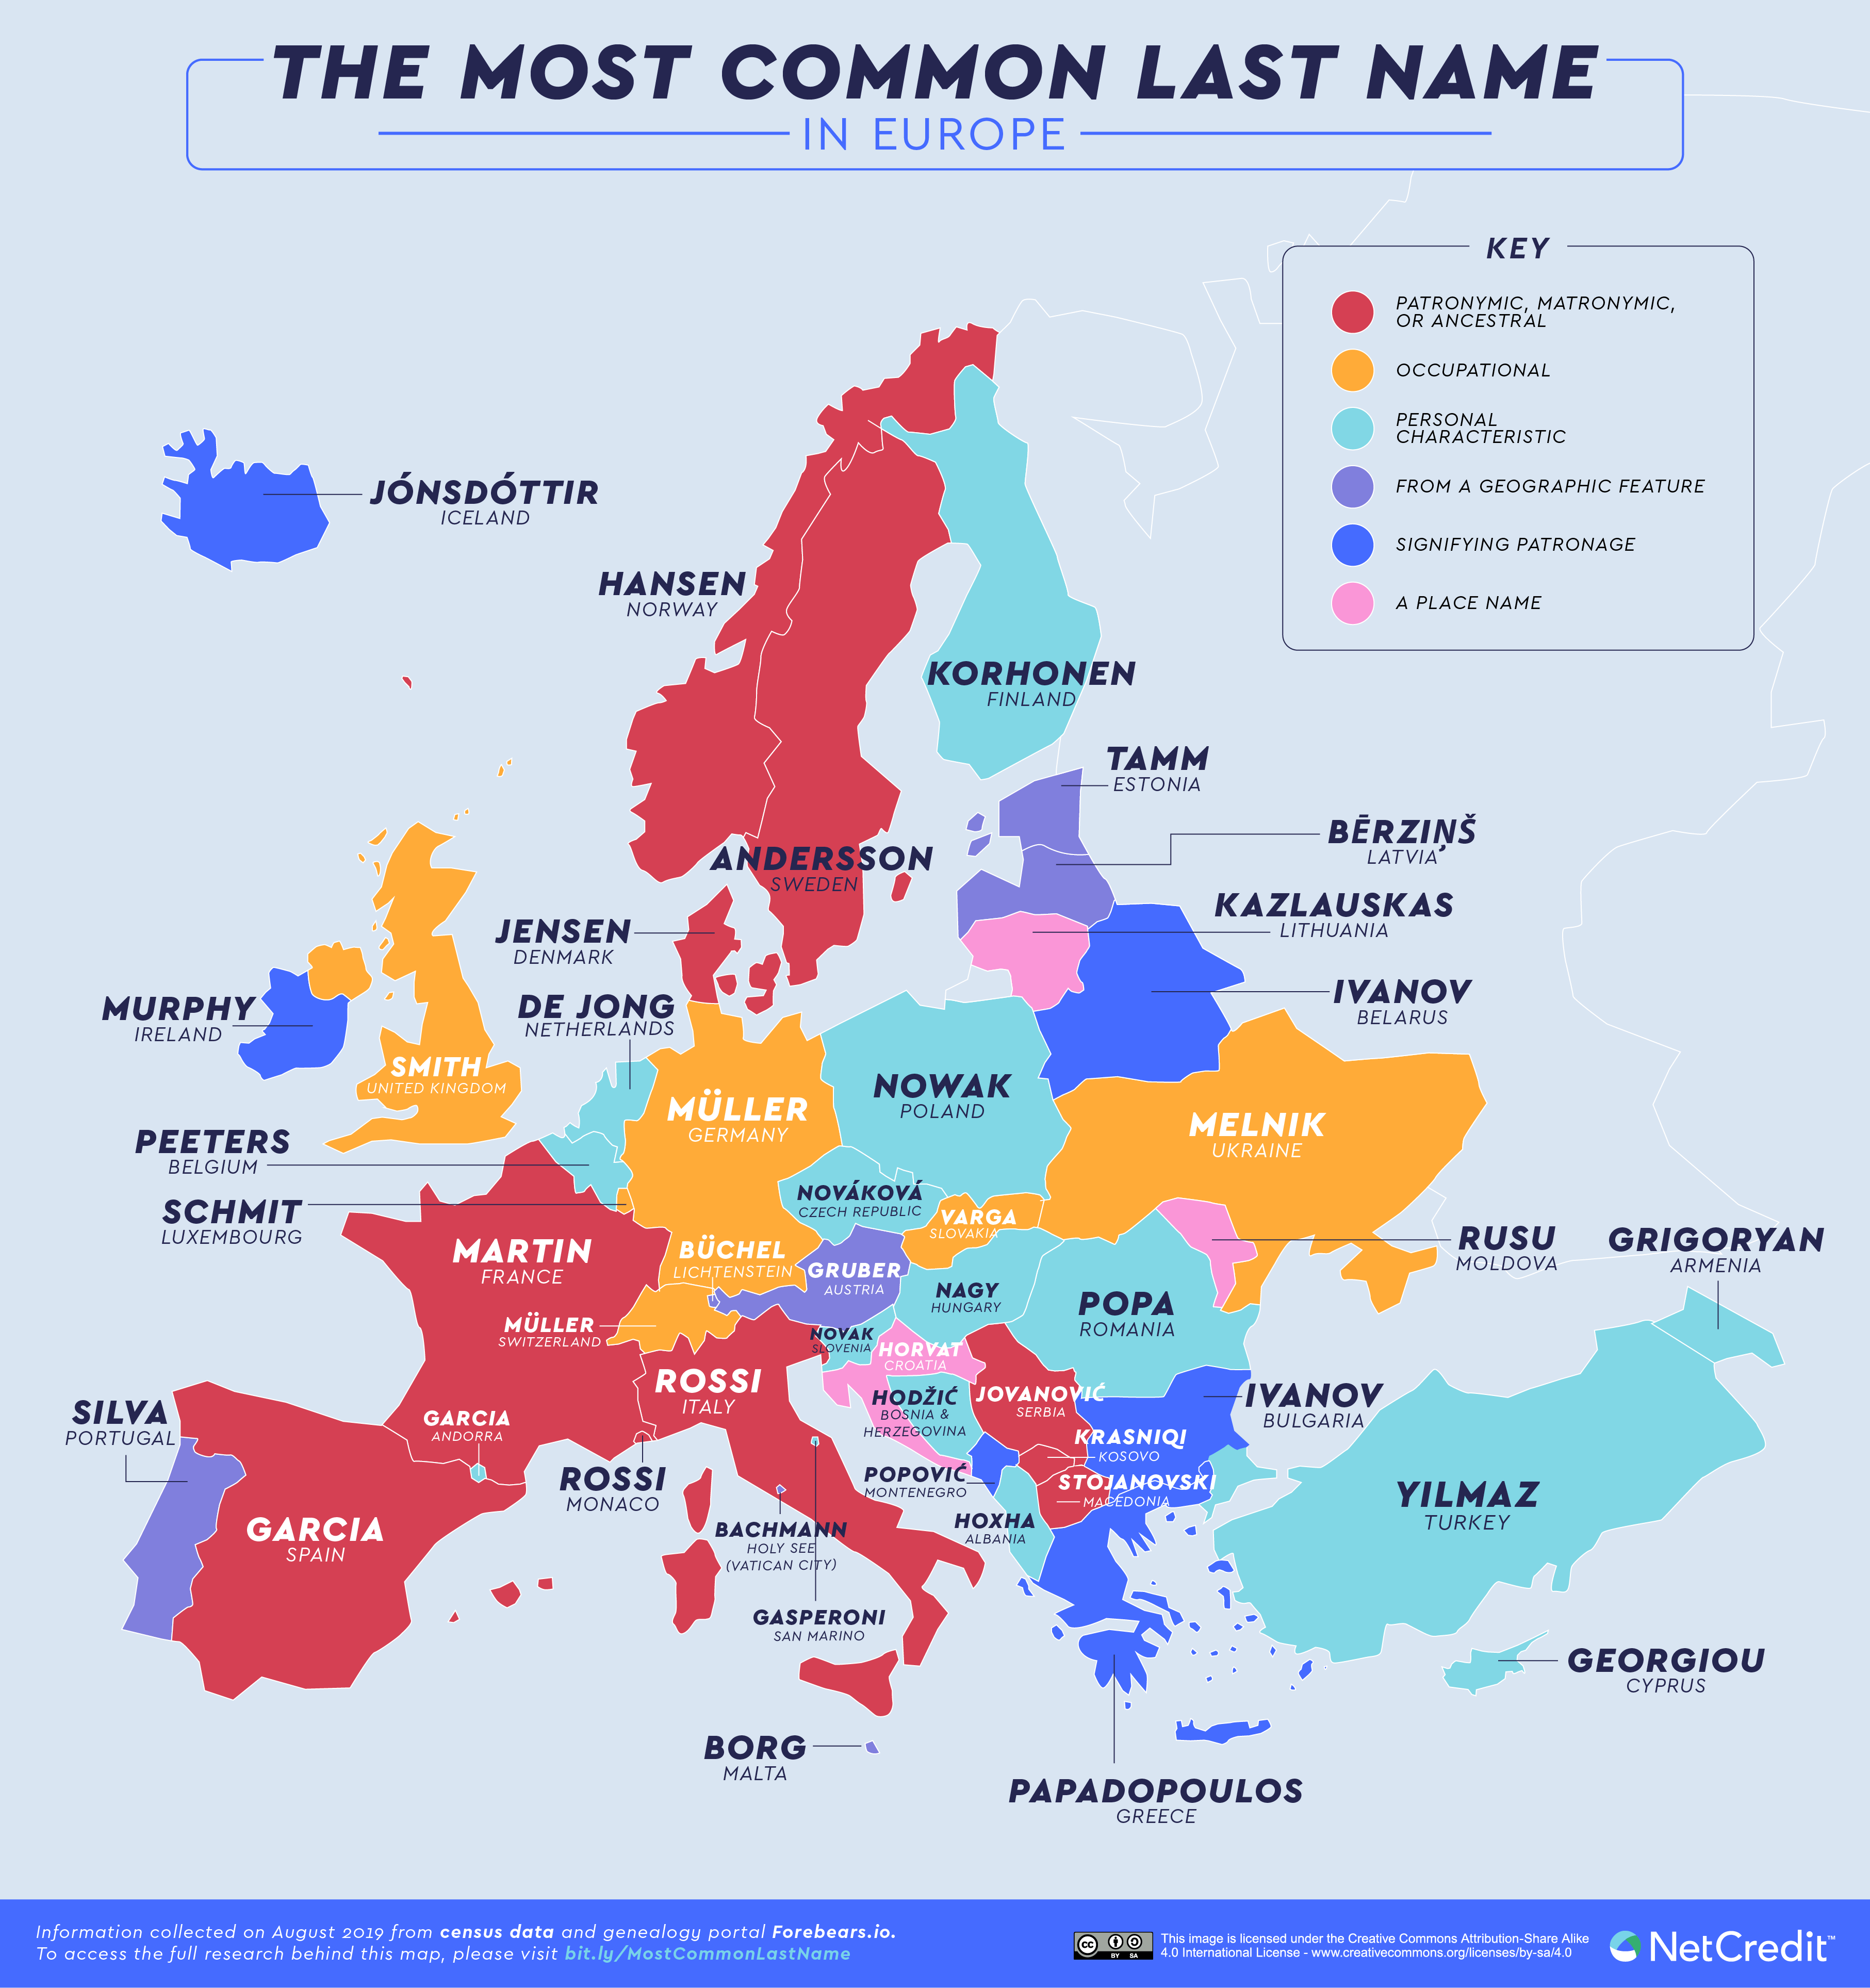 The Most Common Last Names in Europe